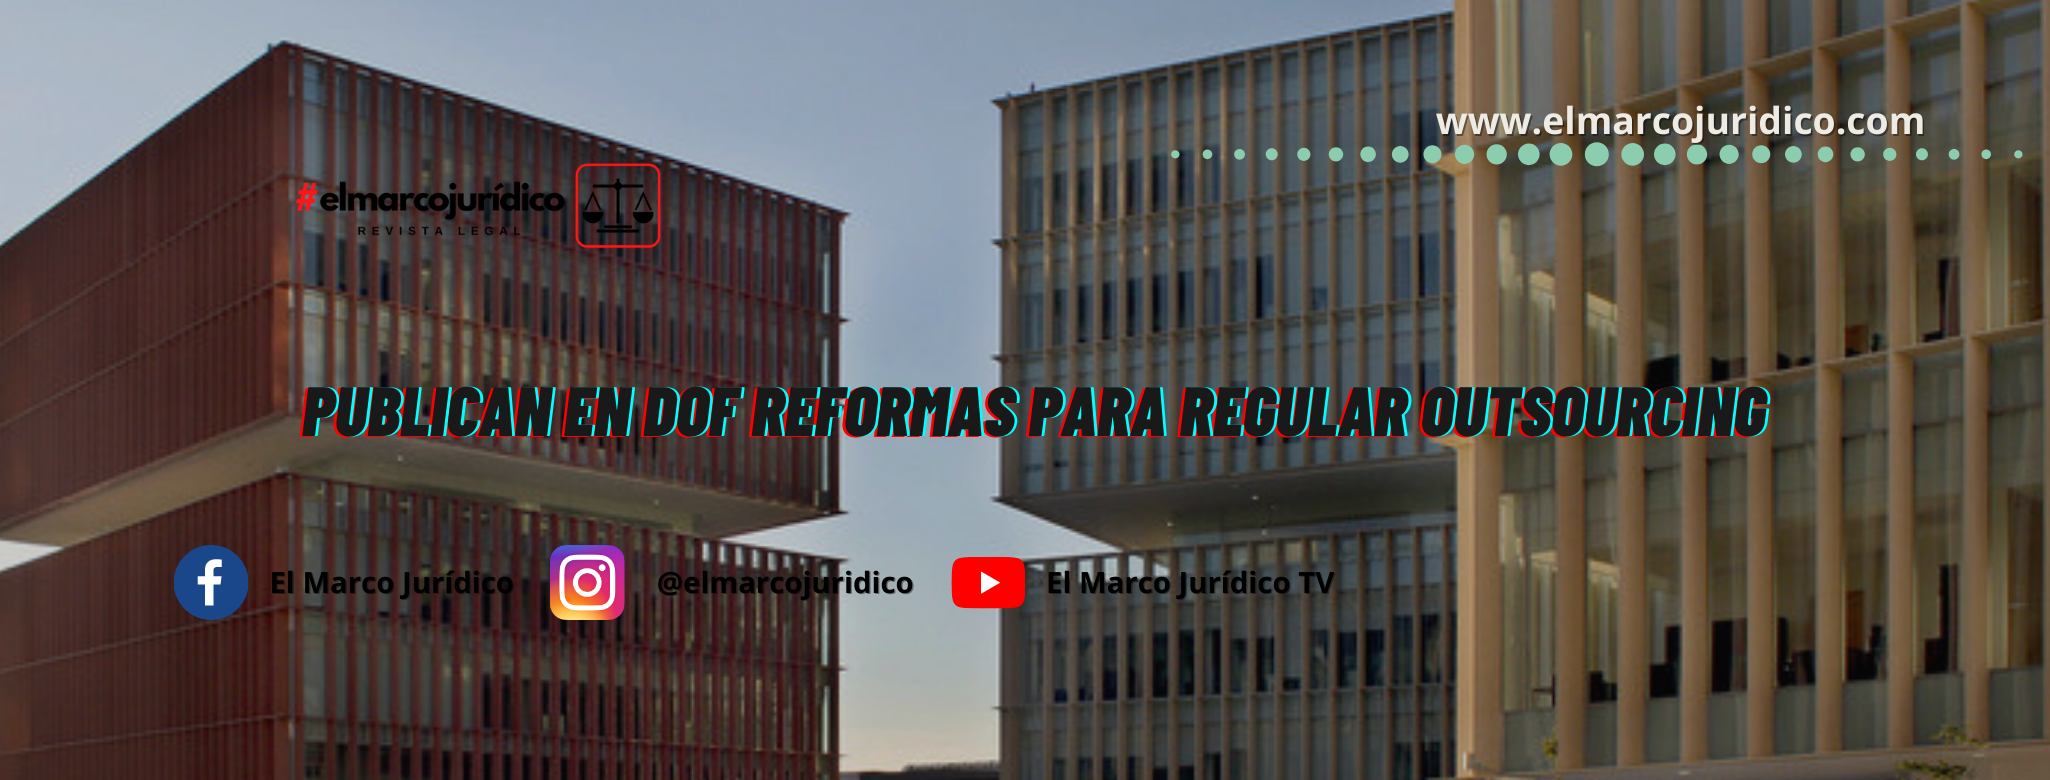 Publican en DOF reformas para regular Outsourcing